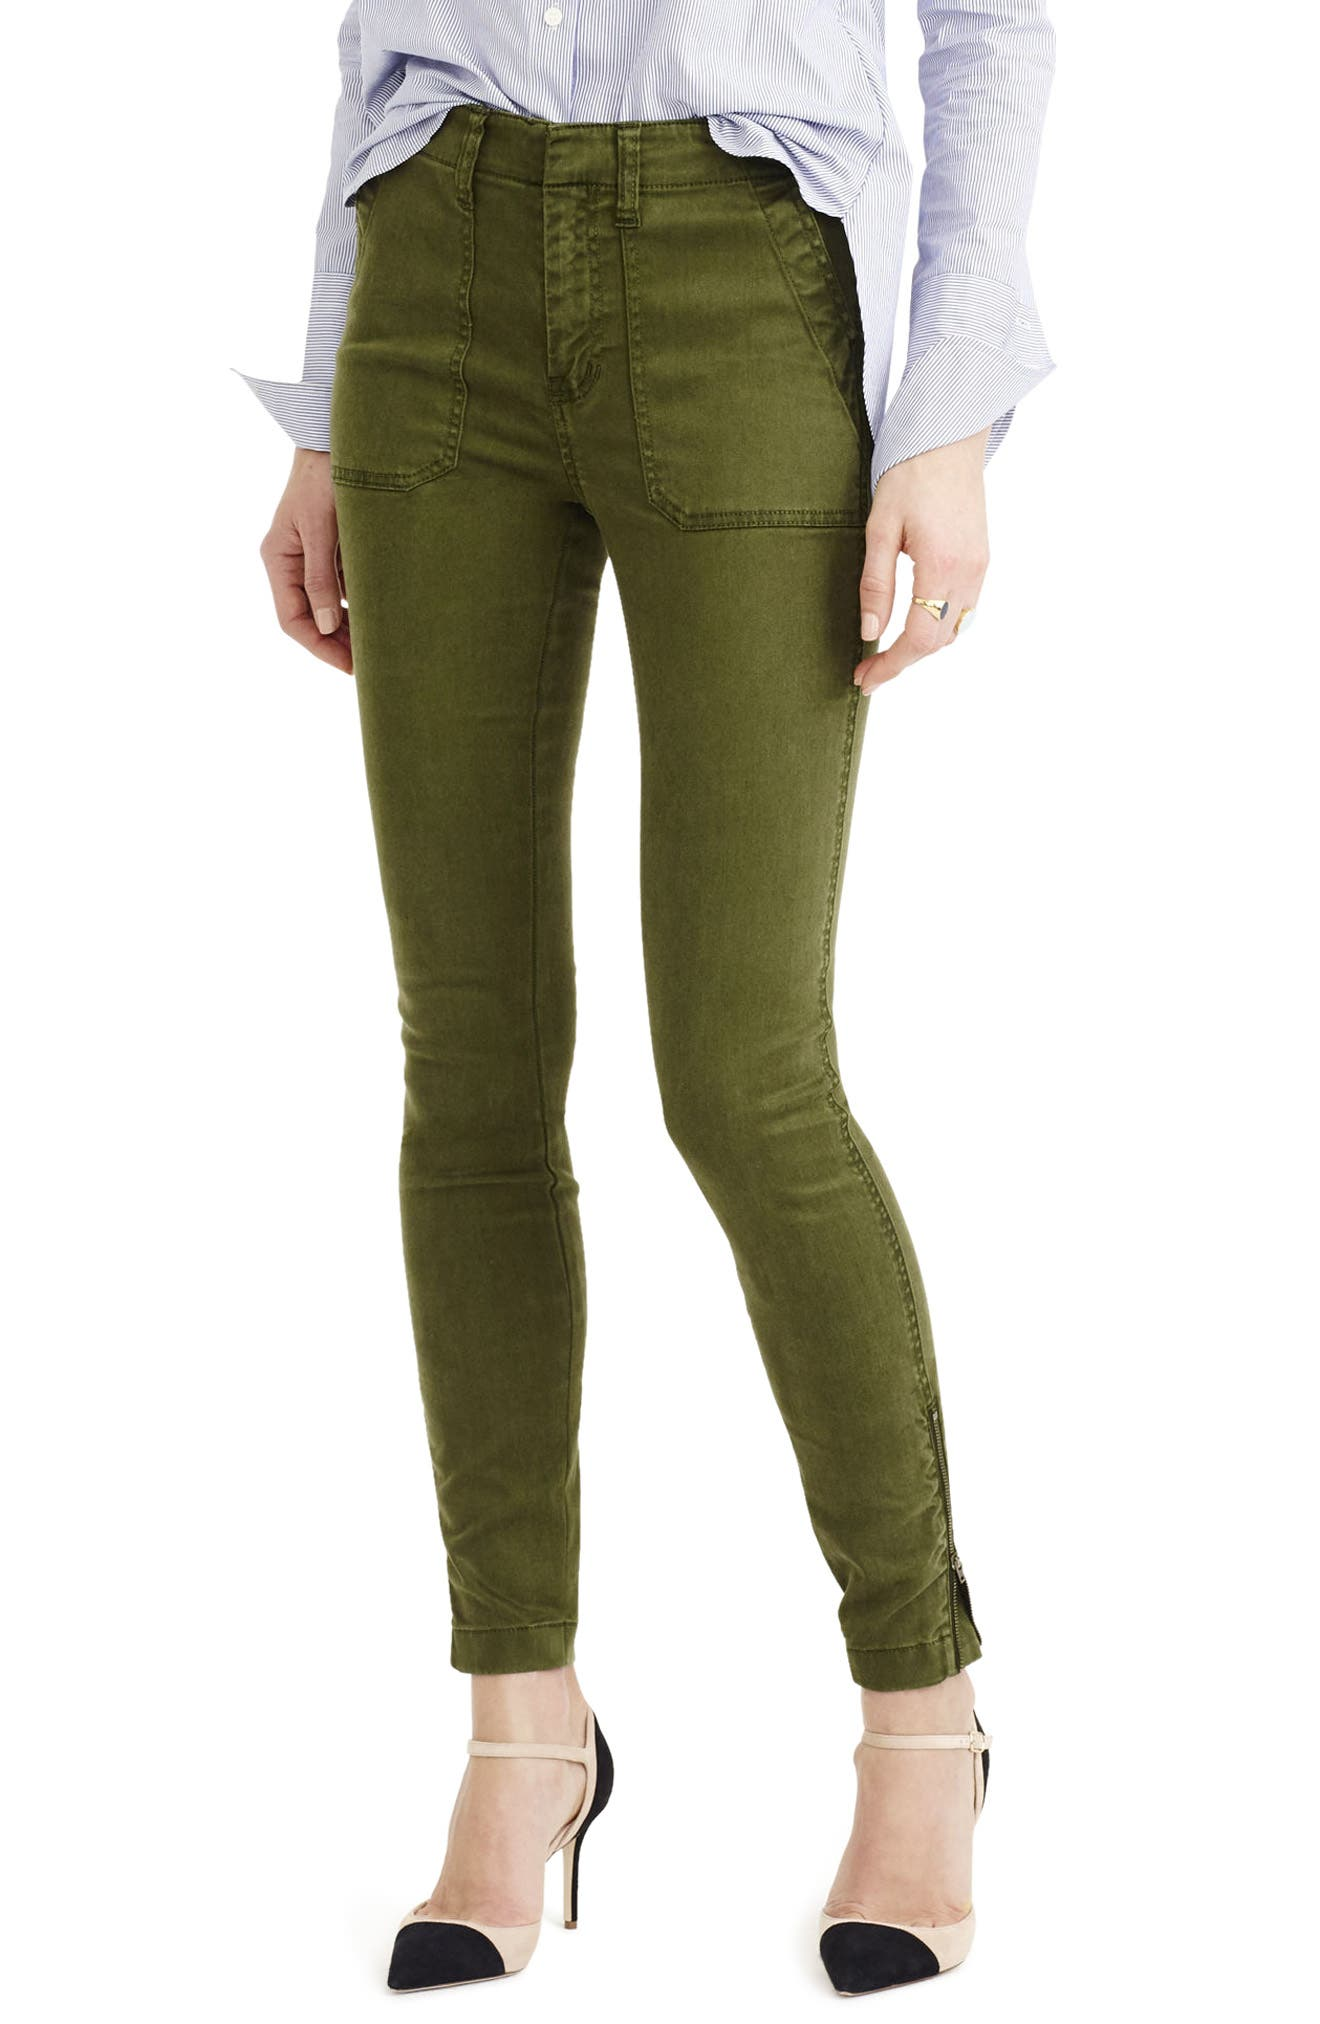 J.Crew Zip Ankle Stretch Skinny Cargo Pants (Regular & Petite)